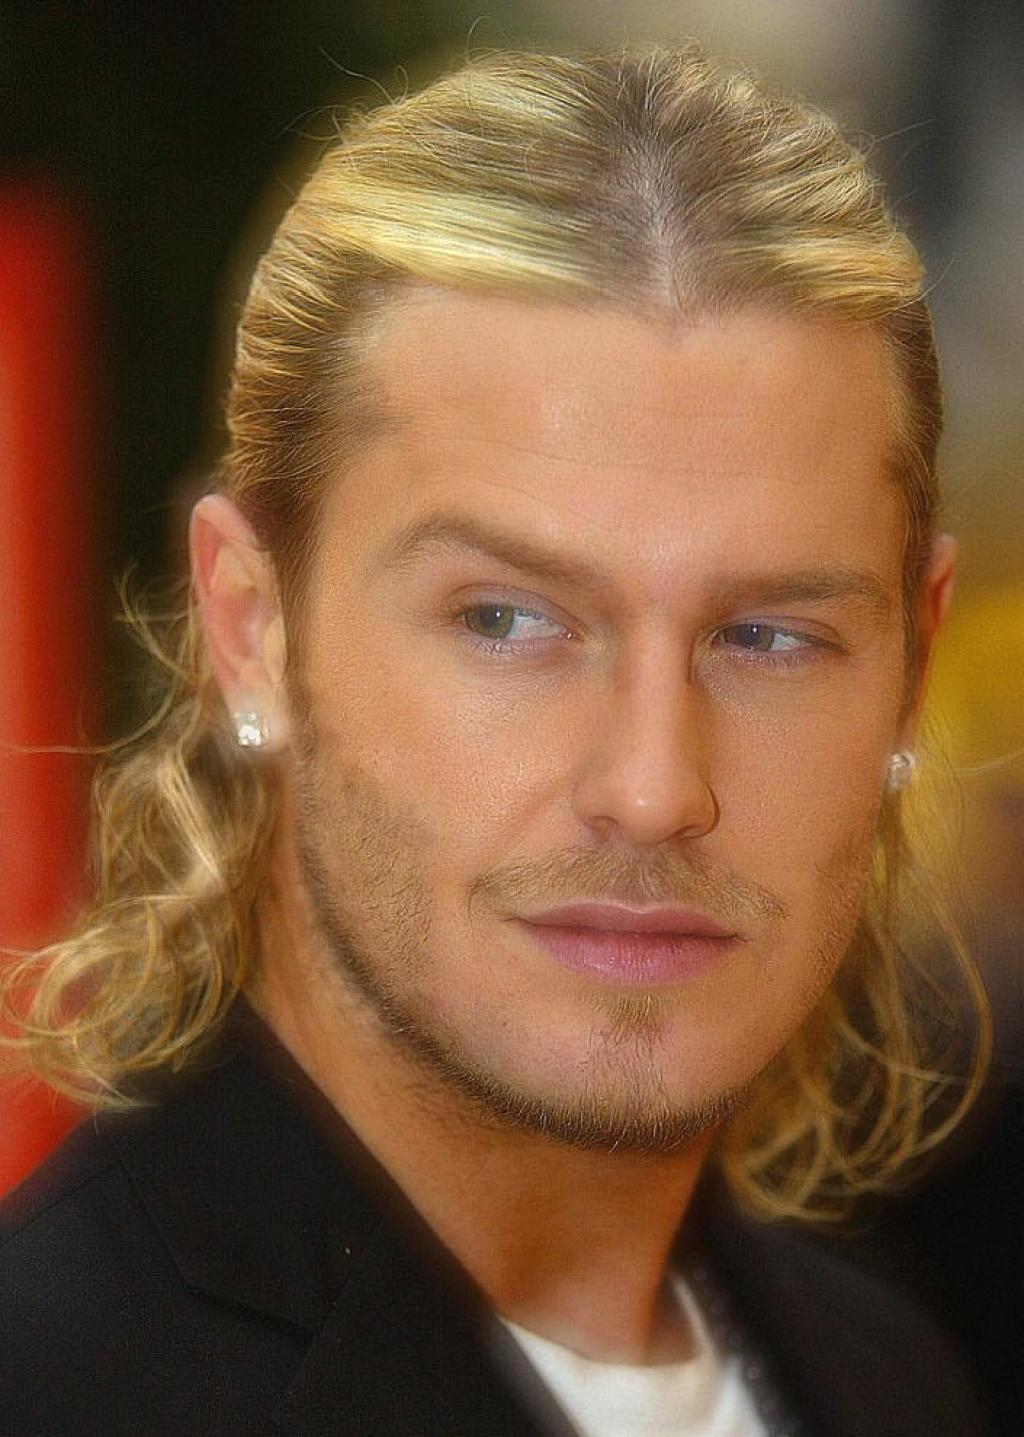 Hairstyles for Men with Long Blonde Hair